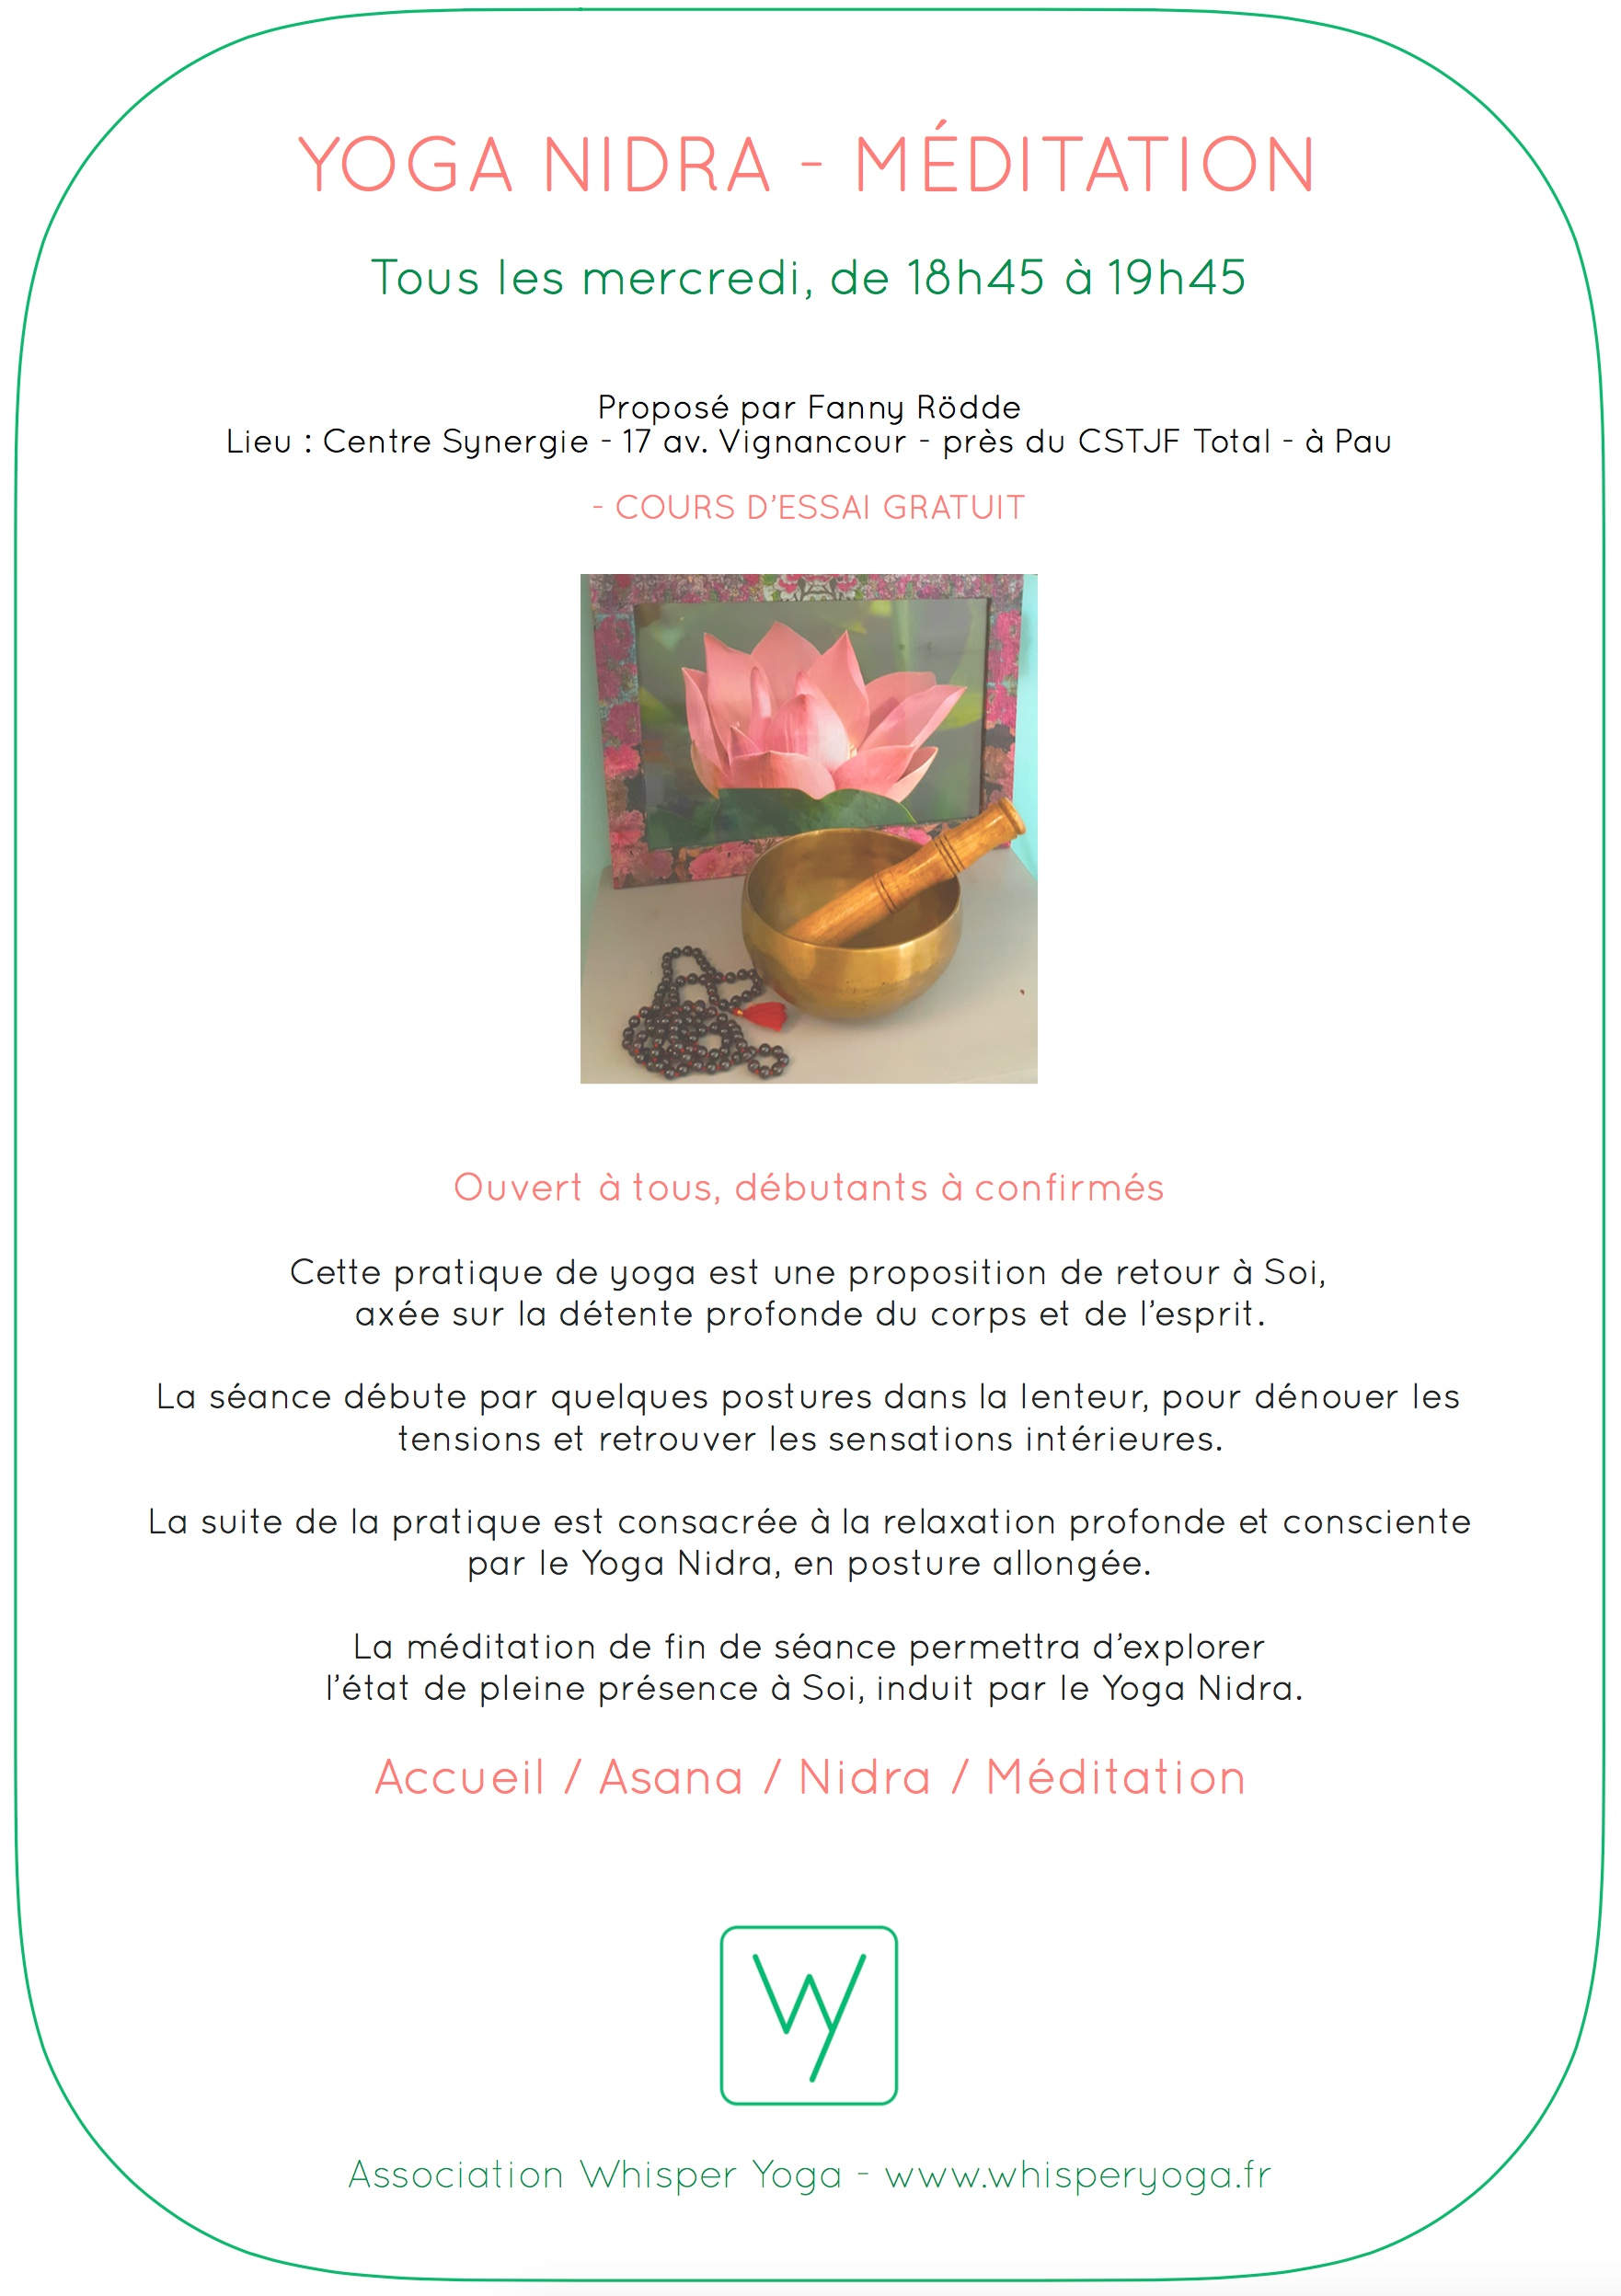 Blog Archives - Whisper Yoga à Pau 817d4f7cbd8